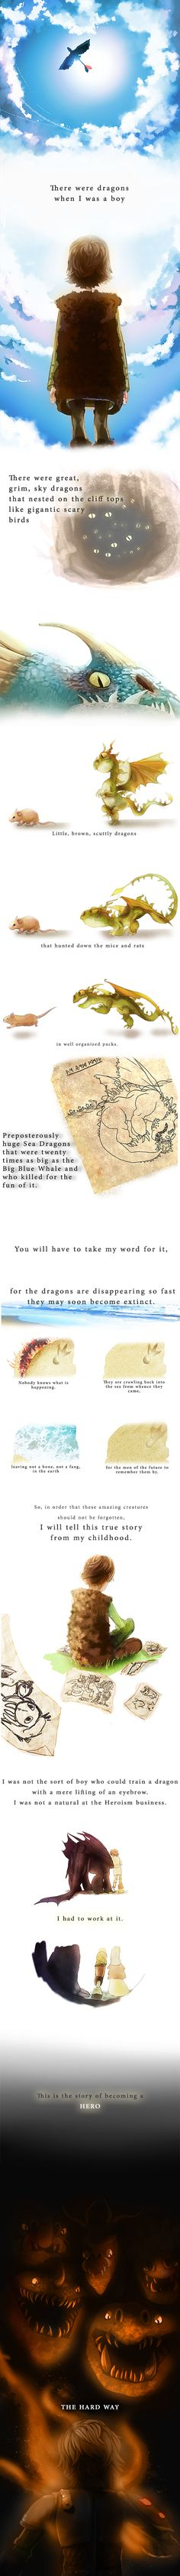 There were dragons when I was a Boy. They predicted that this will be the first sentence in httyd 3 and this makes me really... really sad :'(